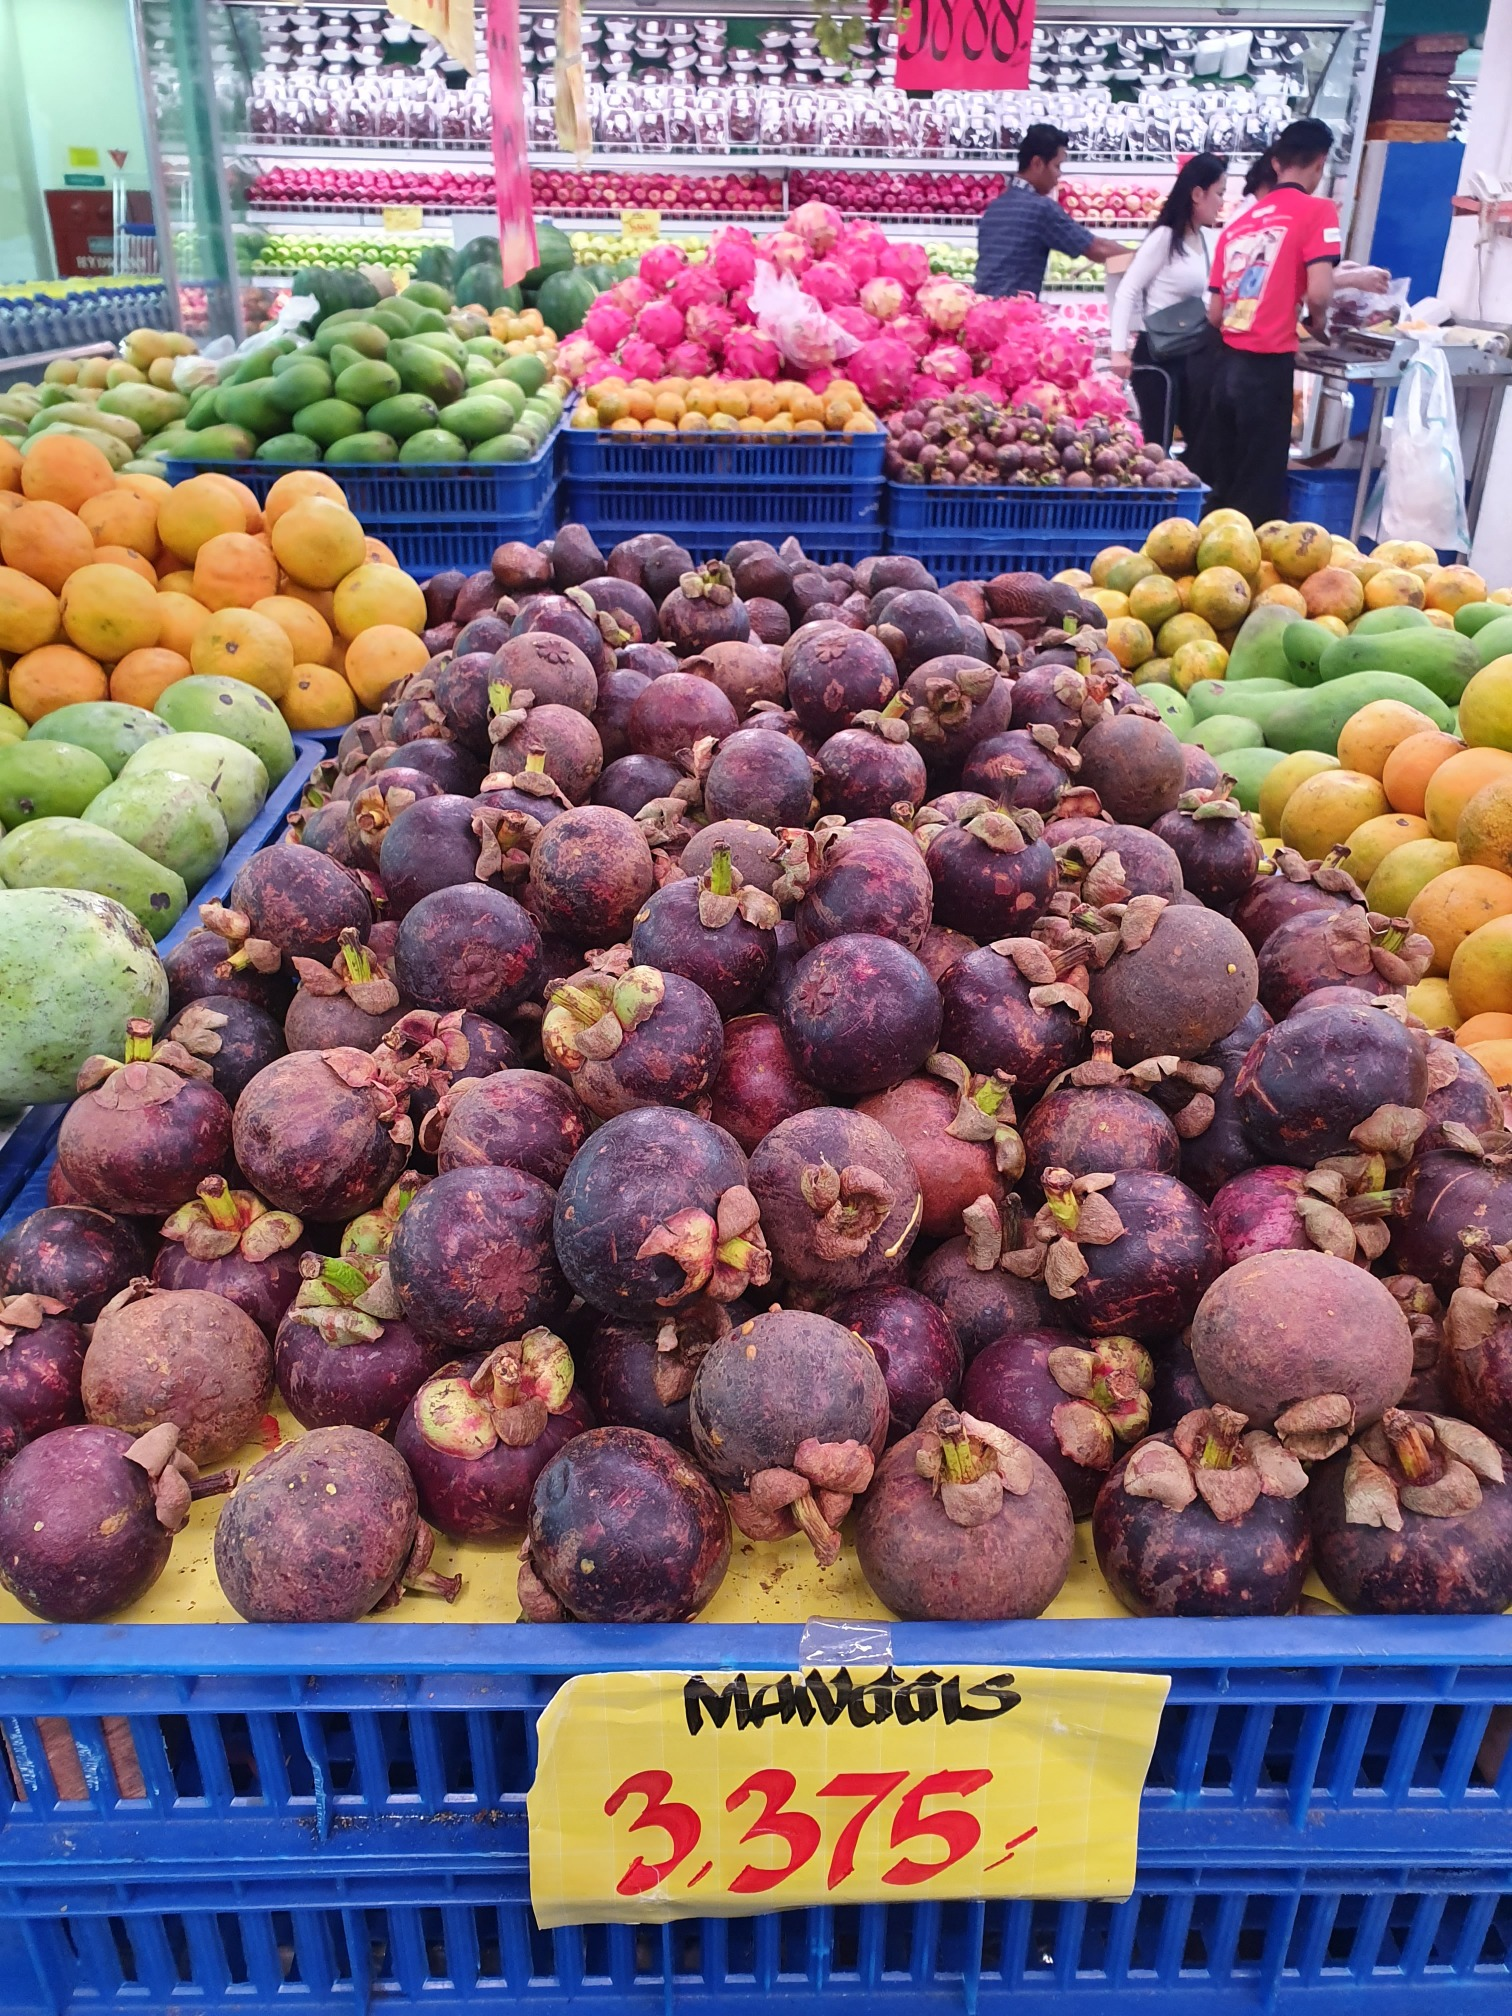 Mangosteen Information, Recipes and Facts